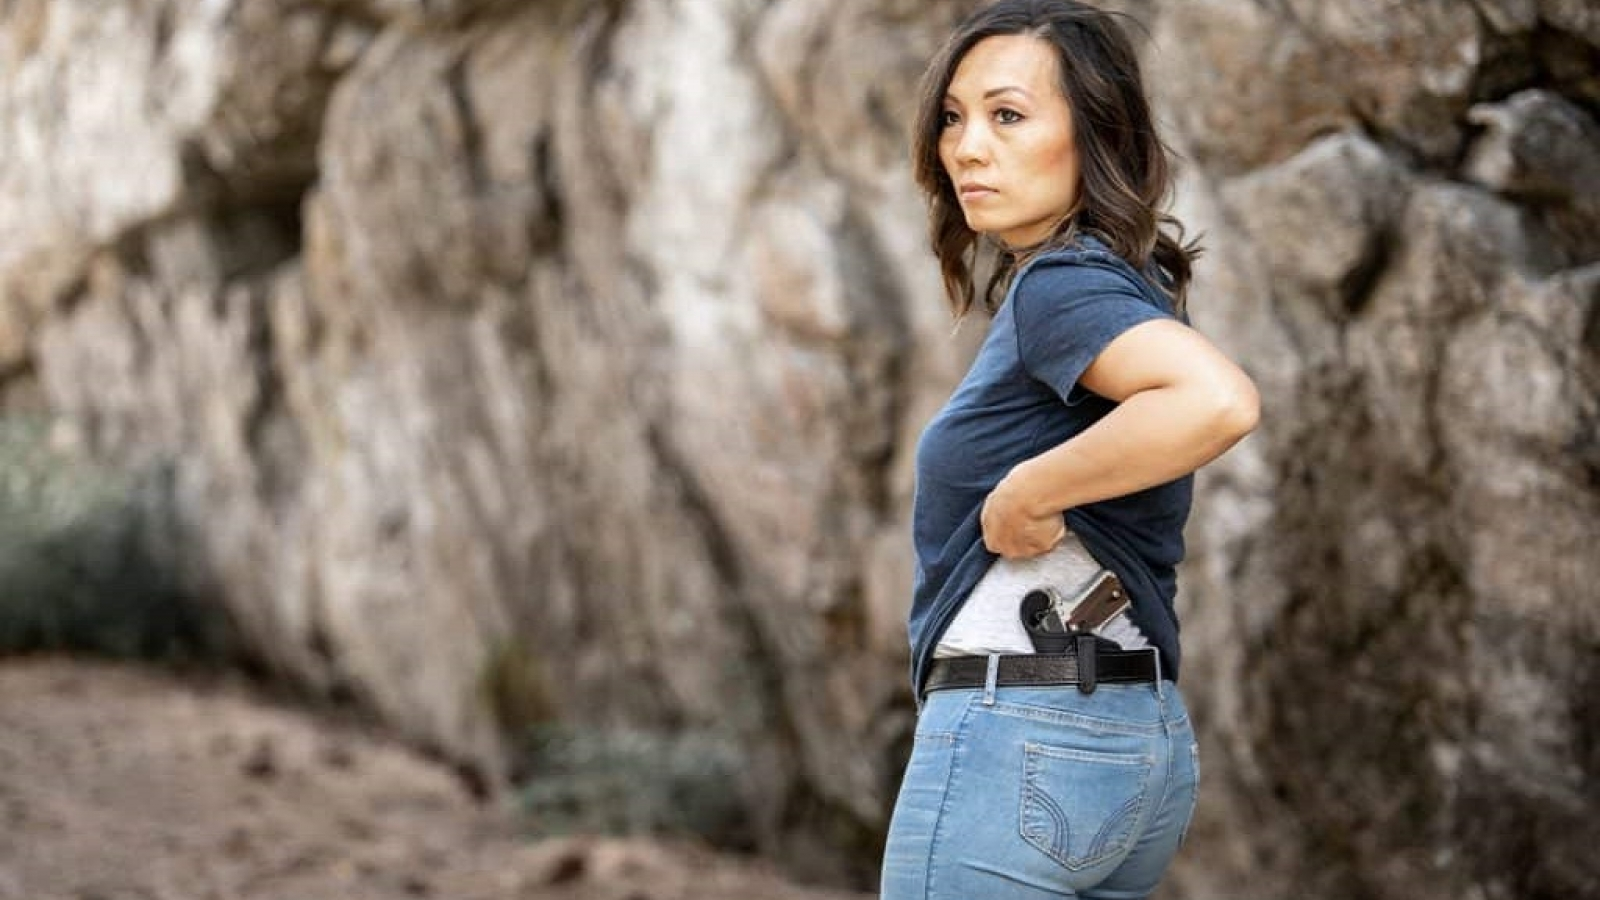 Concealed Carry Tips For Women